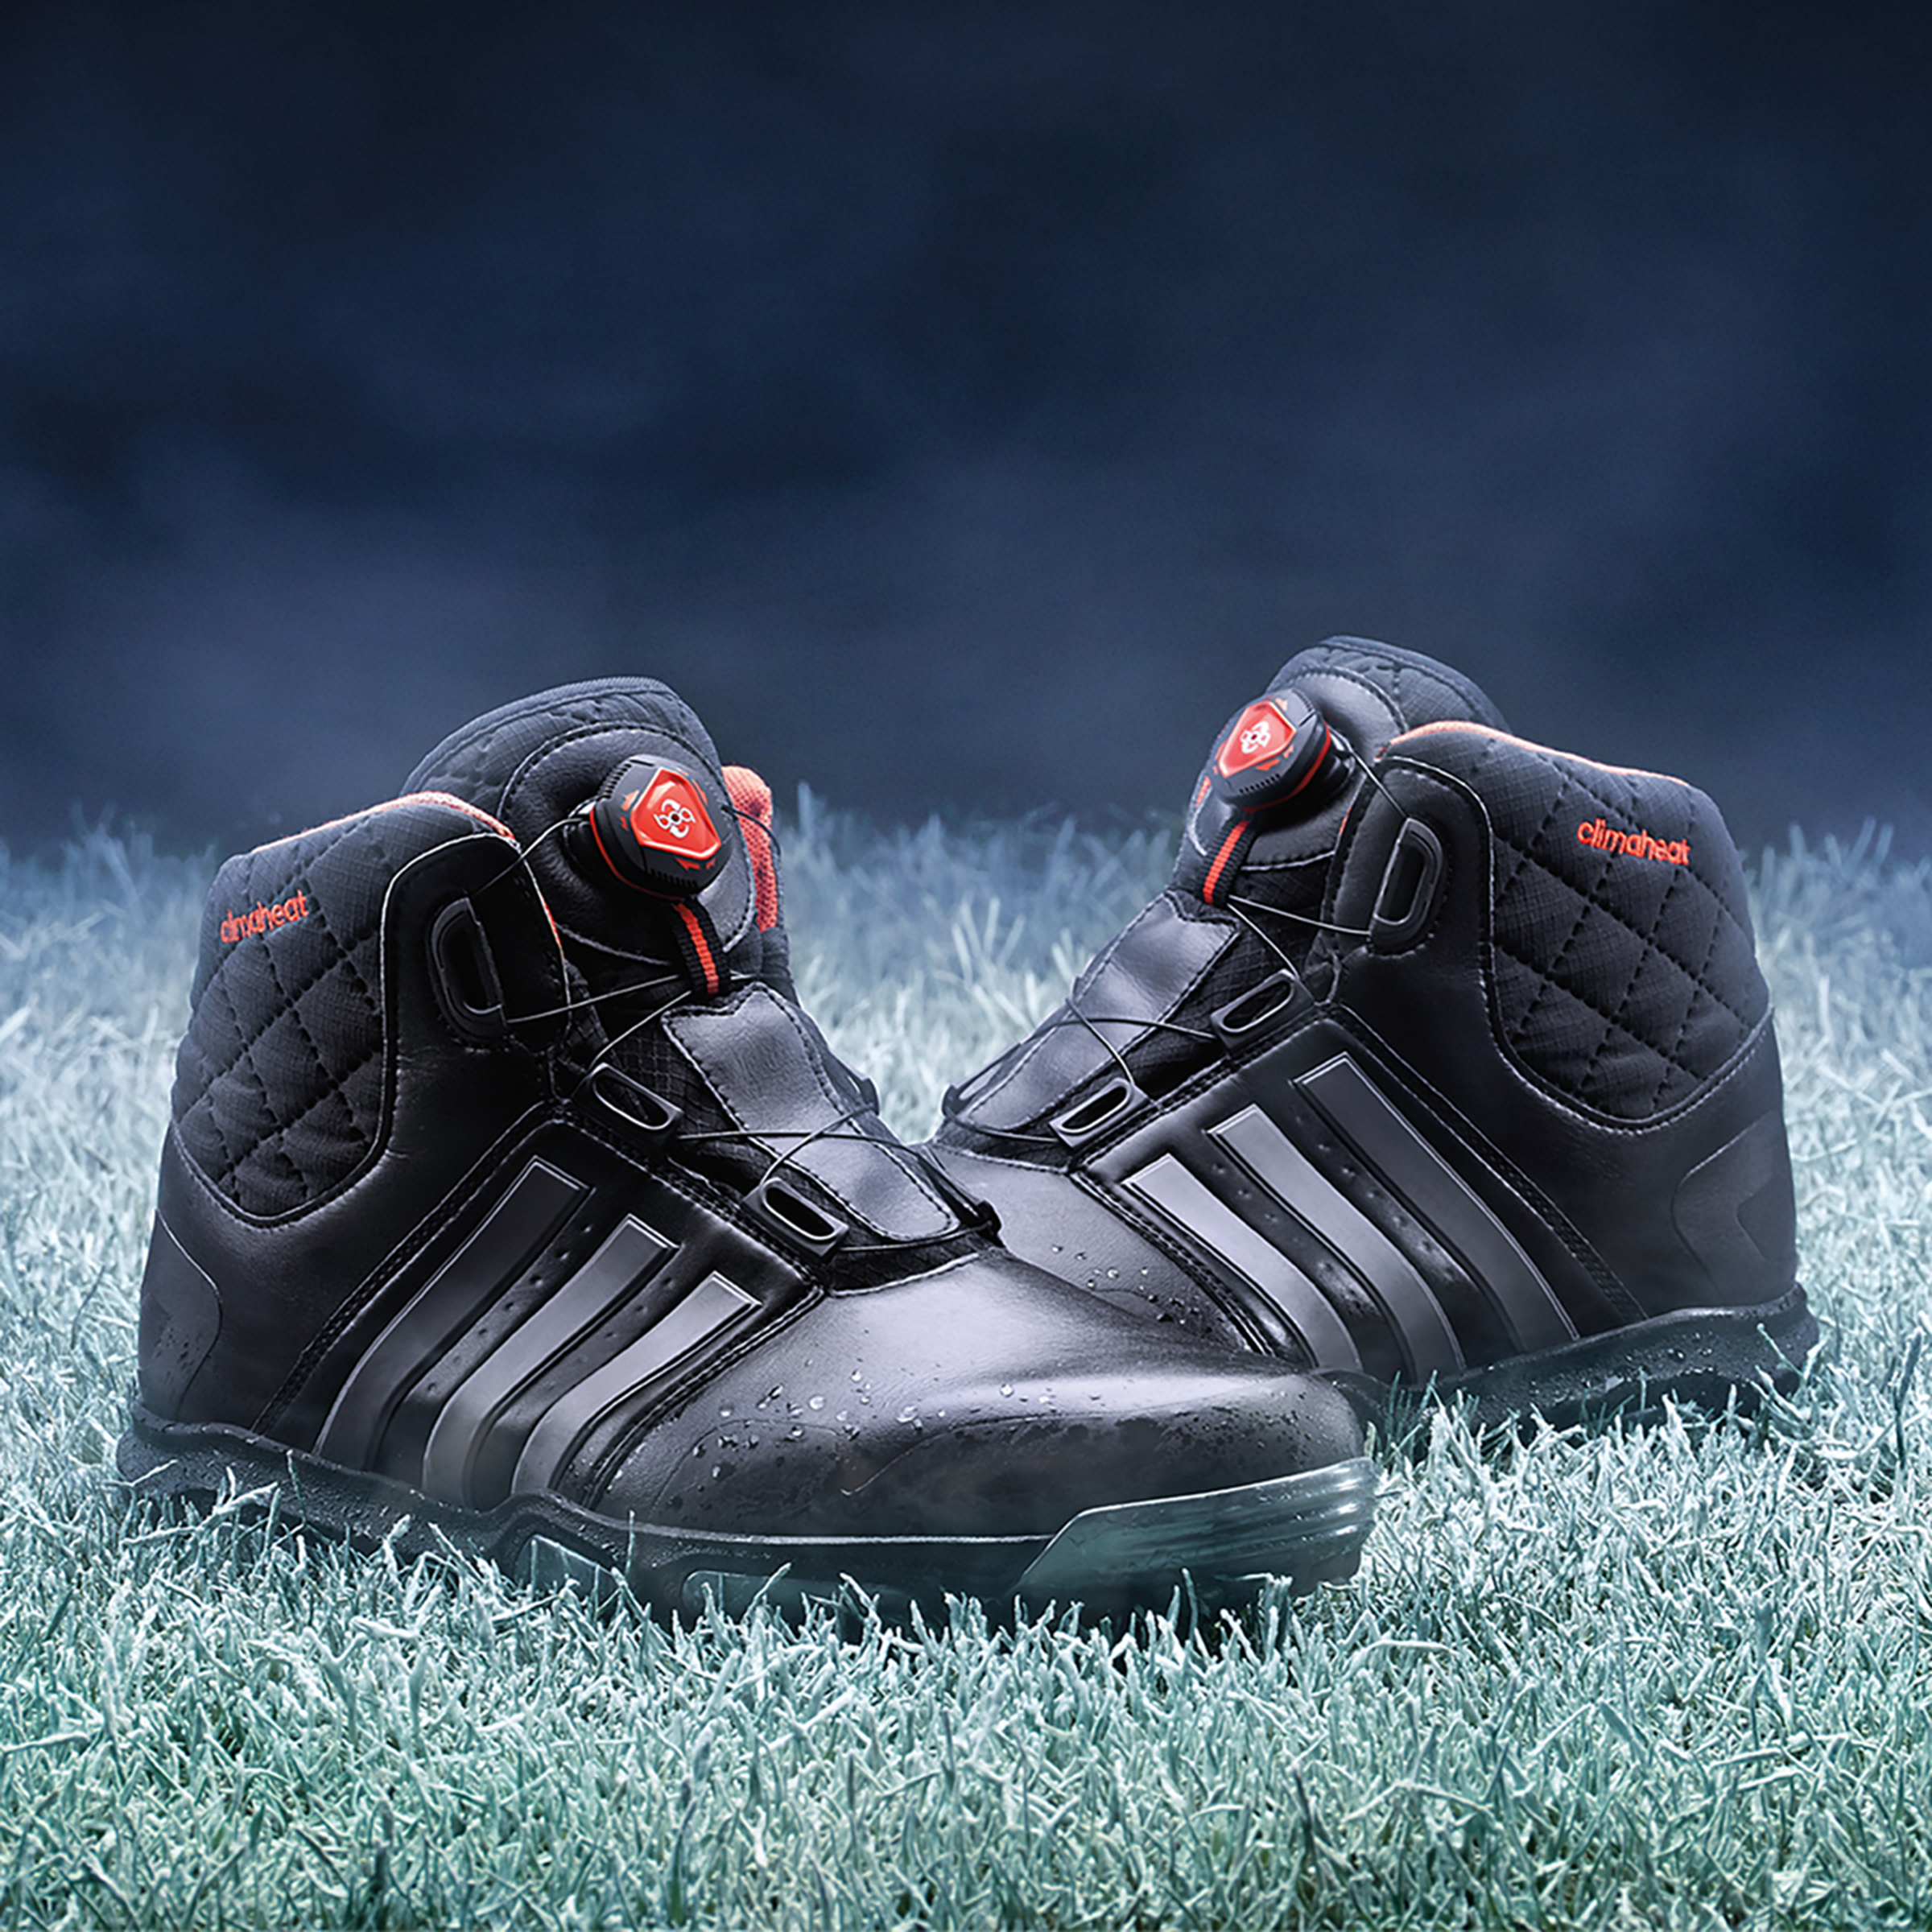 These golf shoes from Adidas are